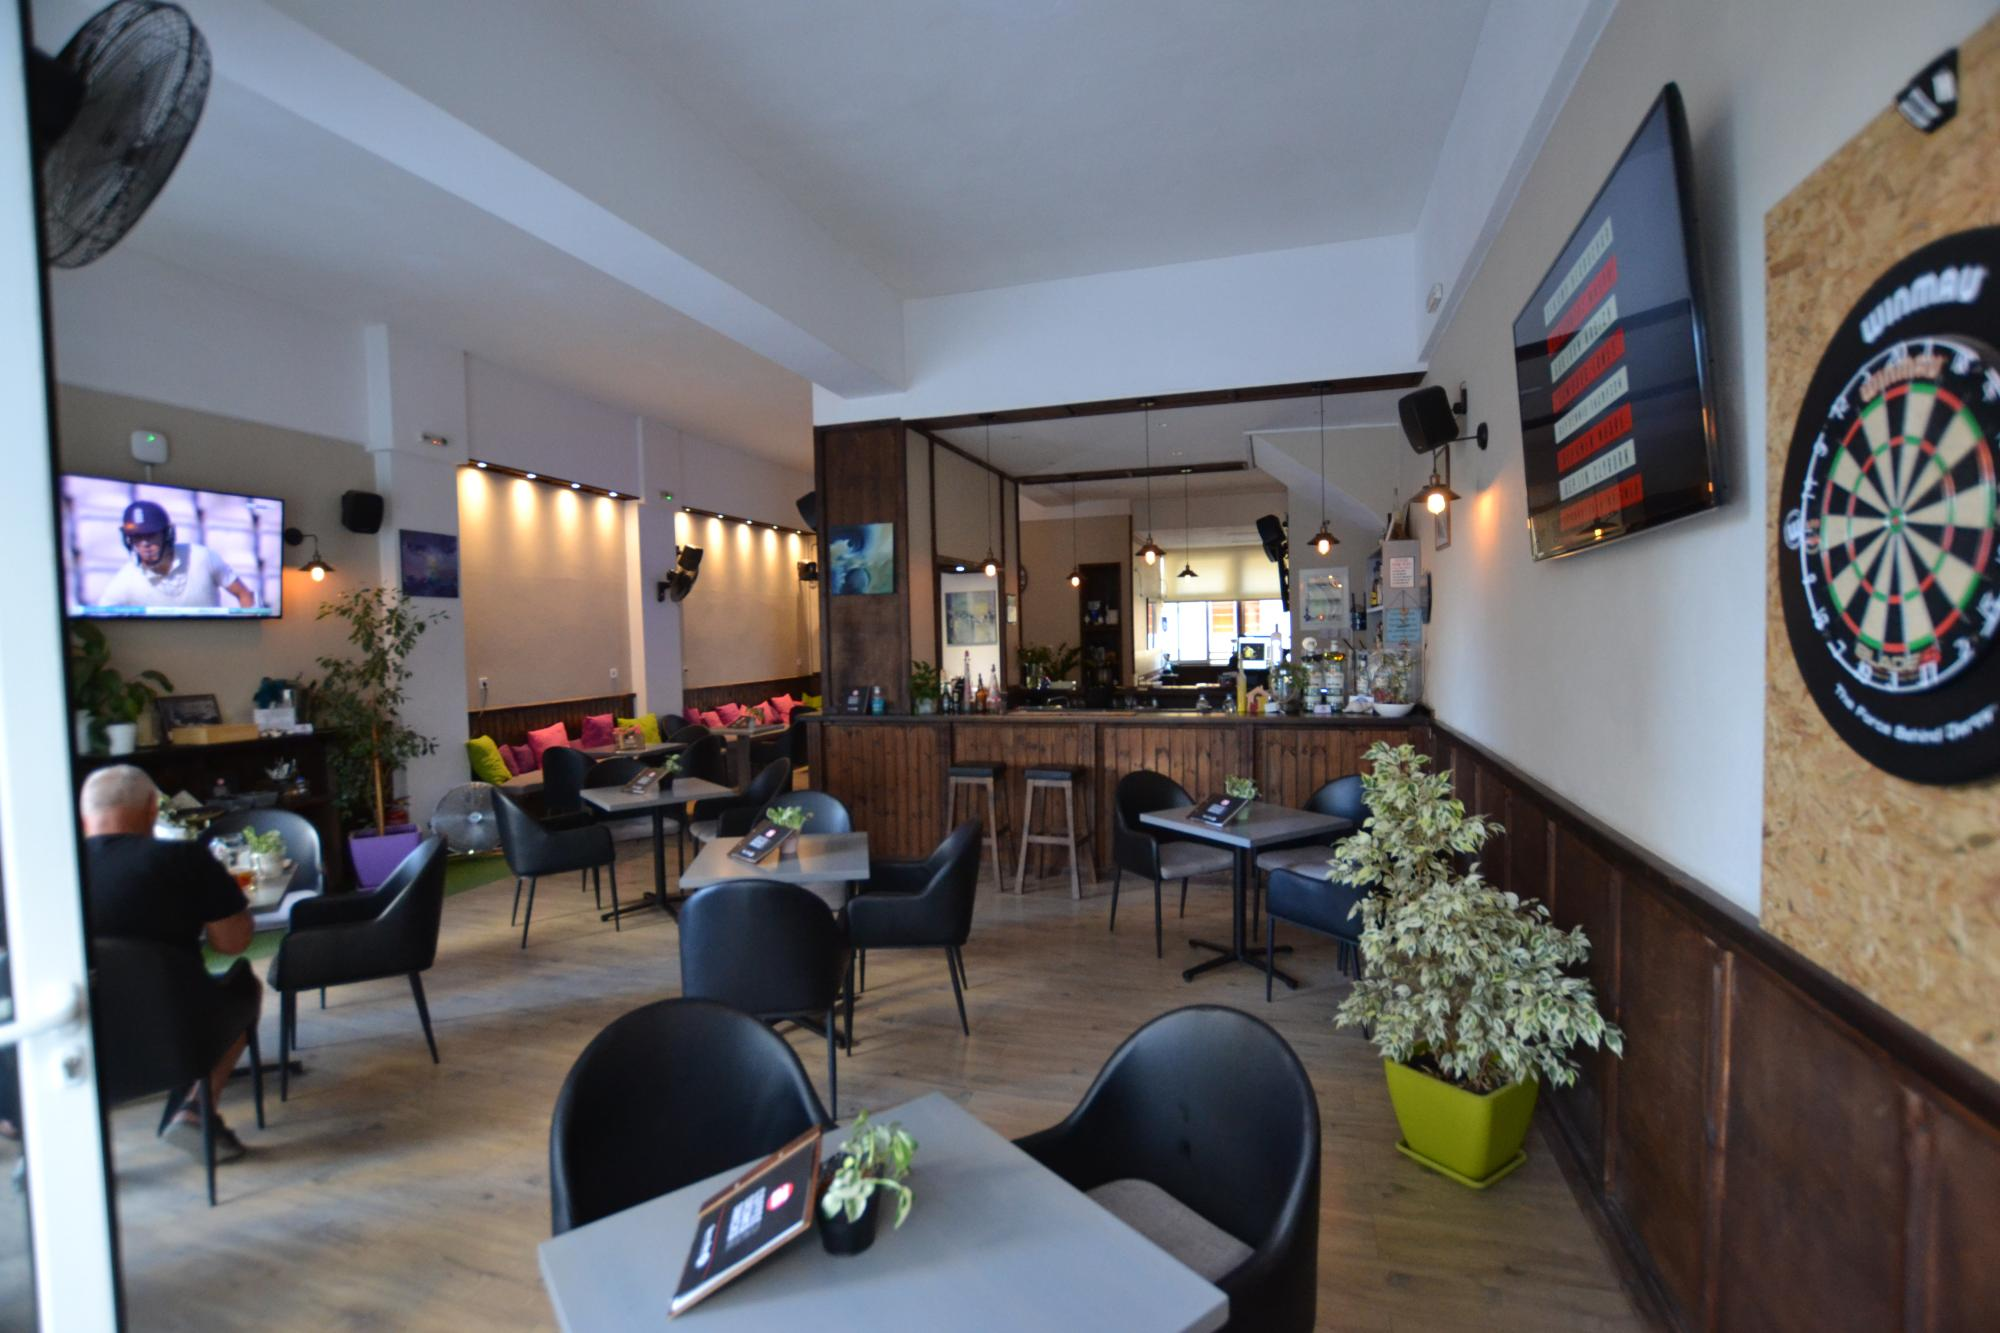 Sports Bar business lease and content for sale in Agios Nikolaos.